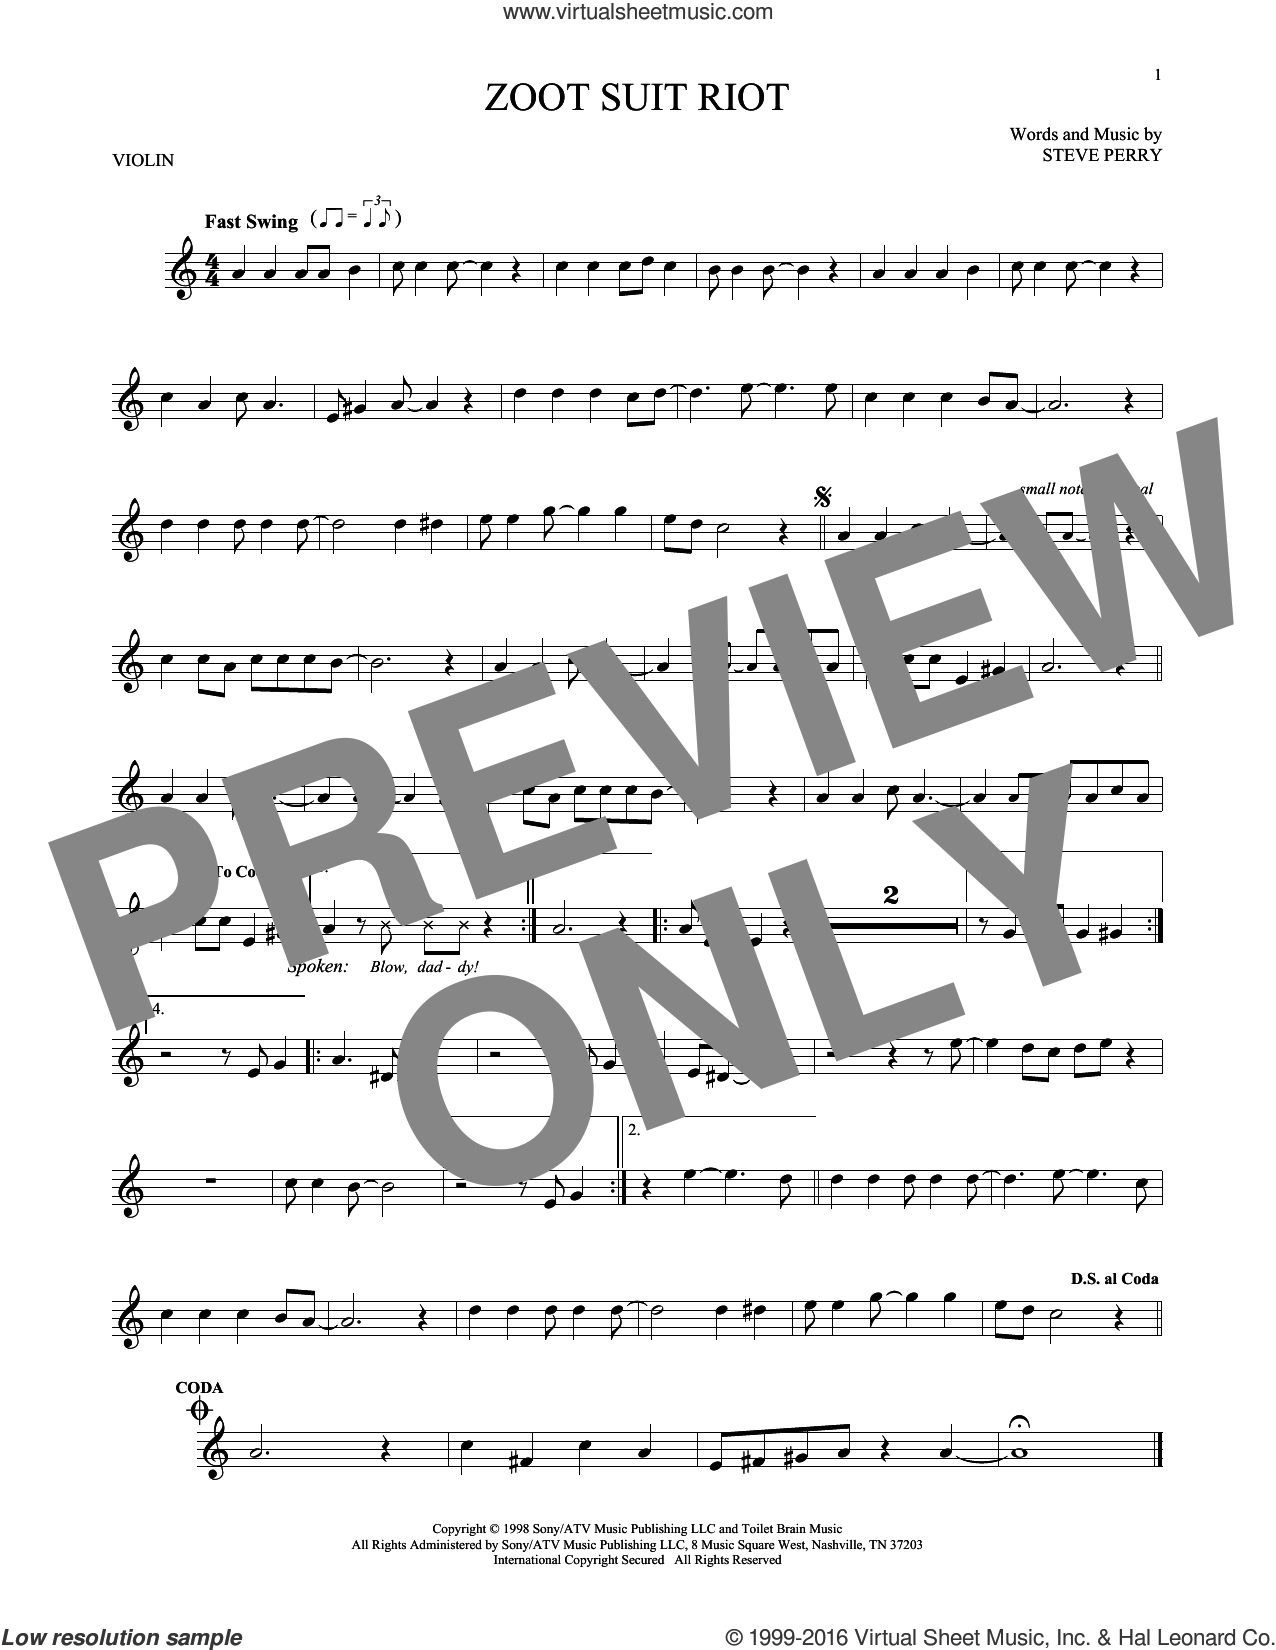 Zoot Suit Riot sheet music for violin solo by Steve Perry